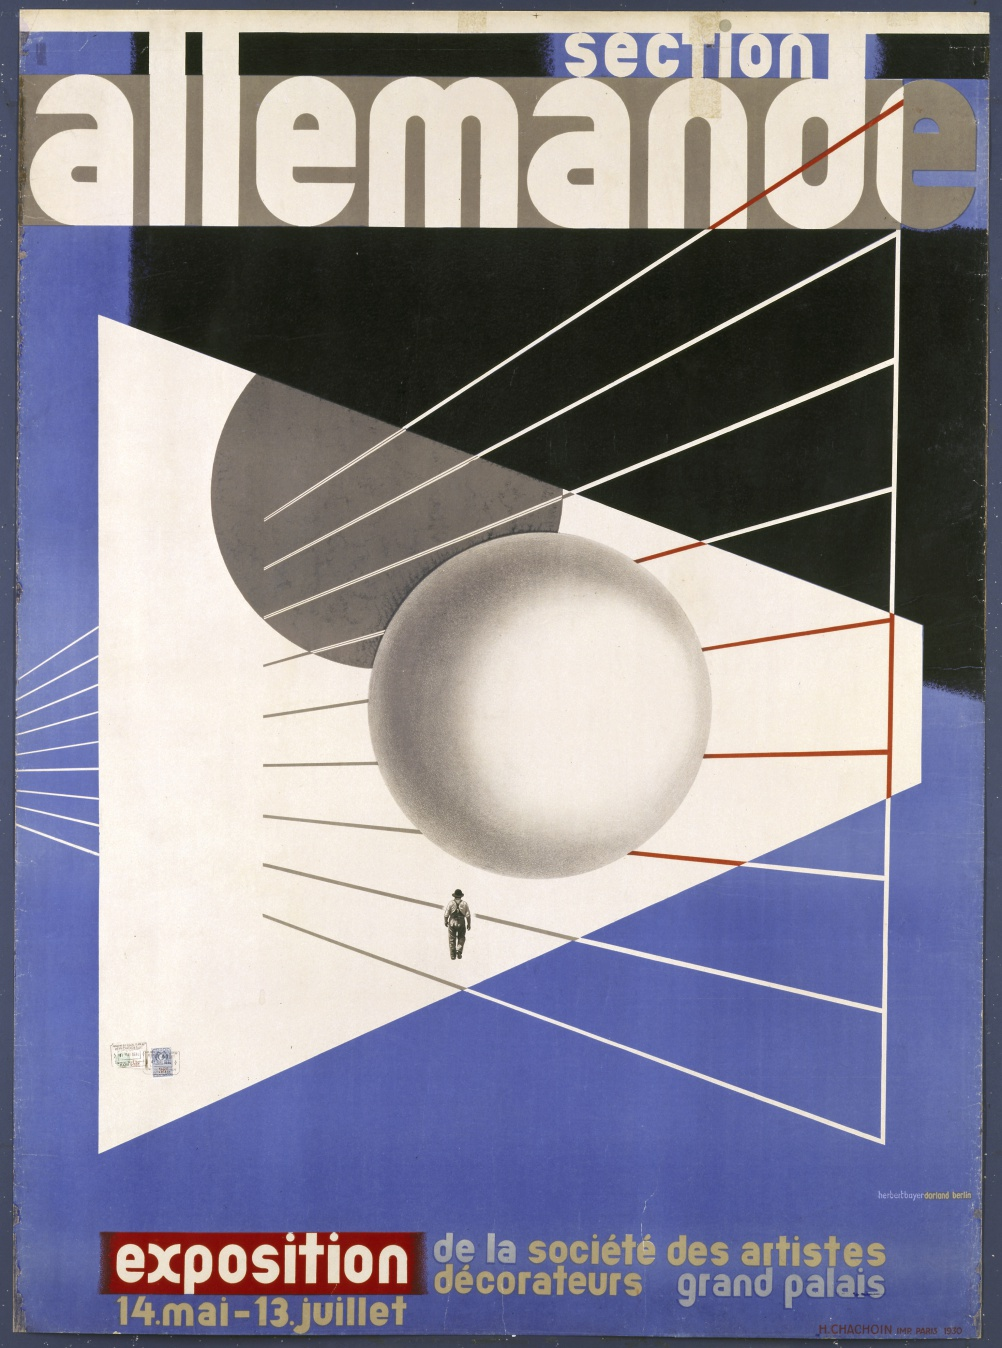 "Herbert Bayer, ""section allemande"" Poster for the Werk-bund Exhibition in Paris, 1930"